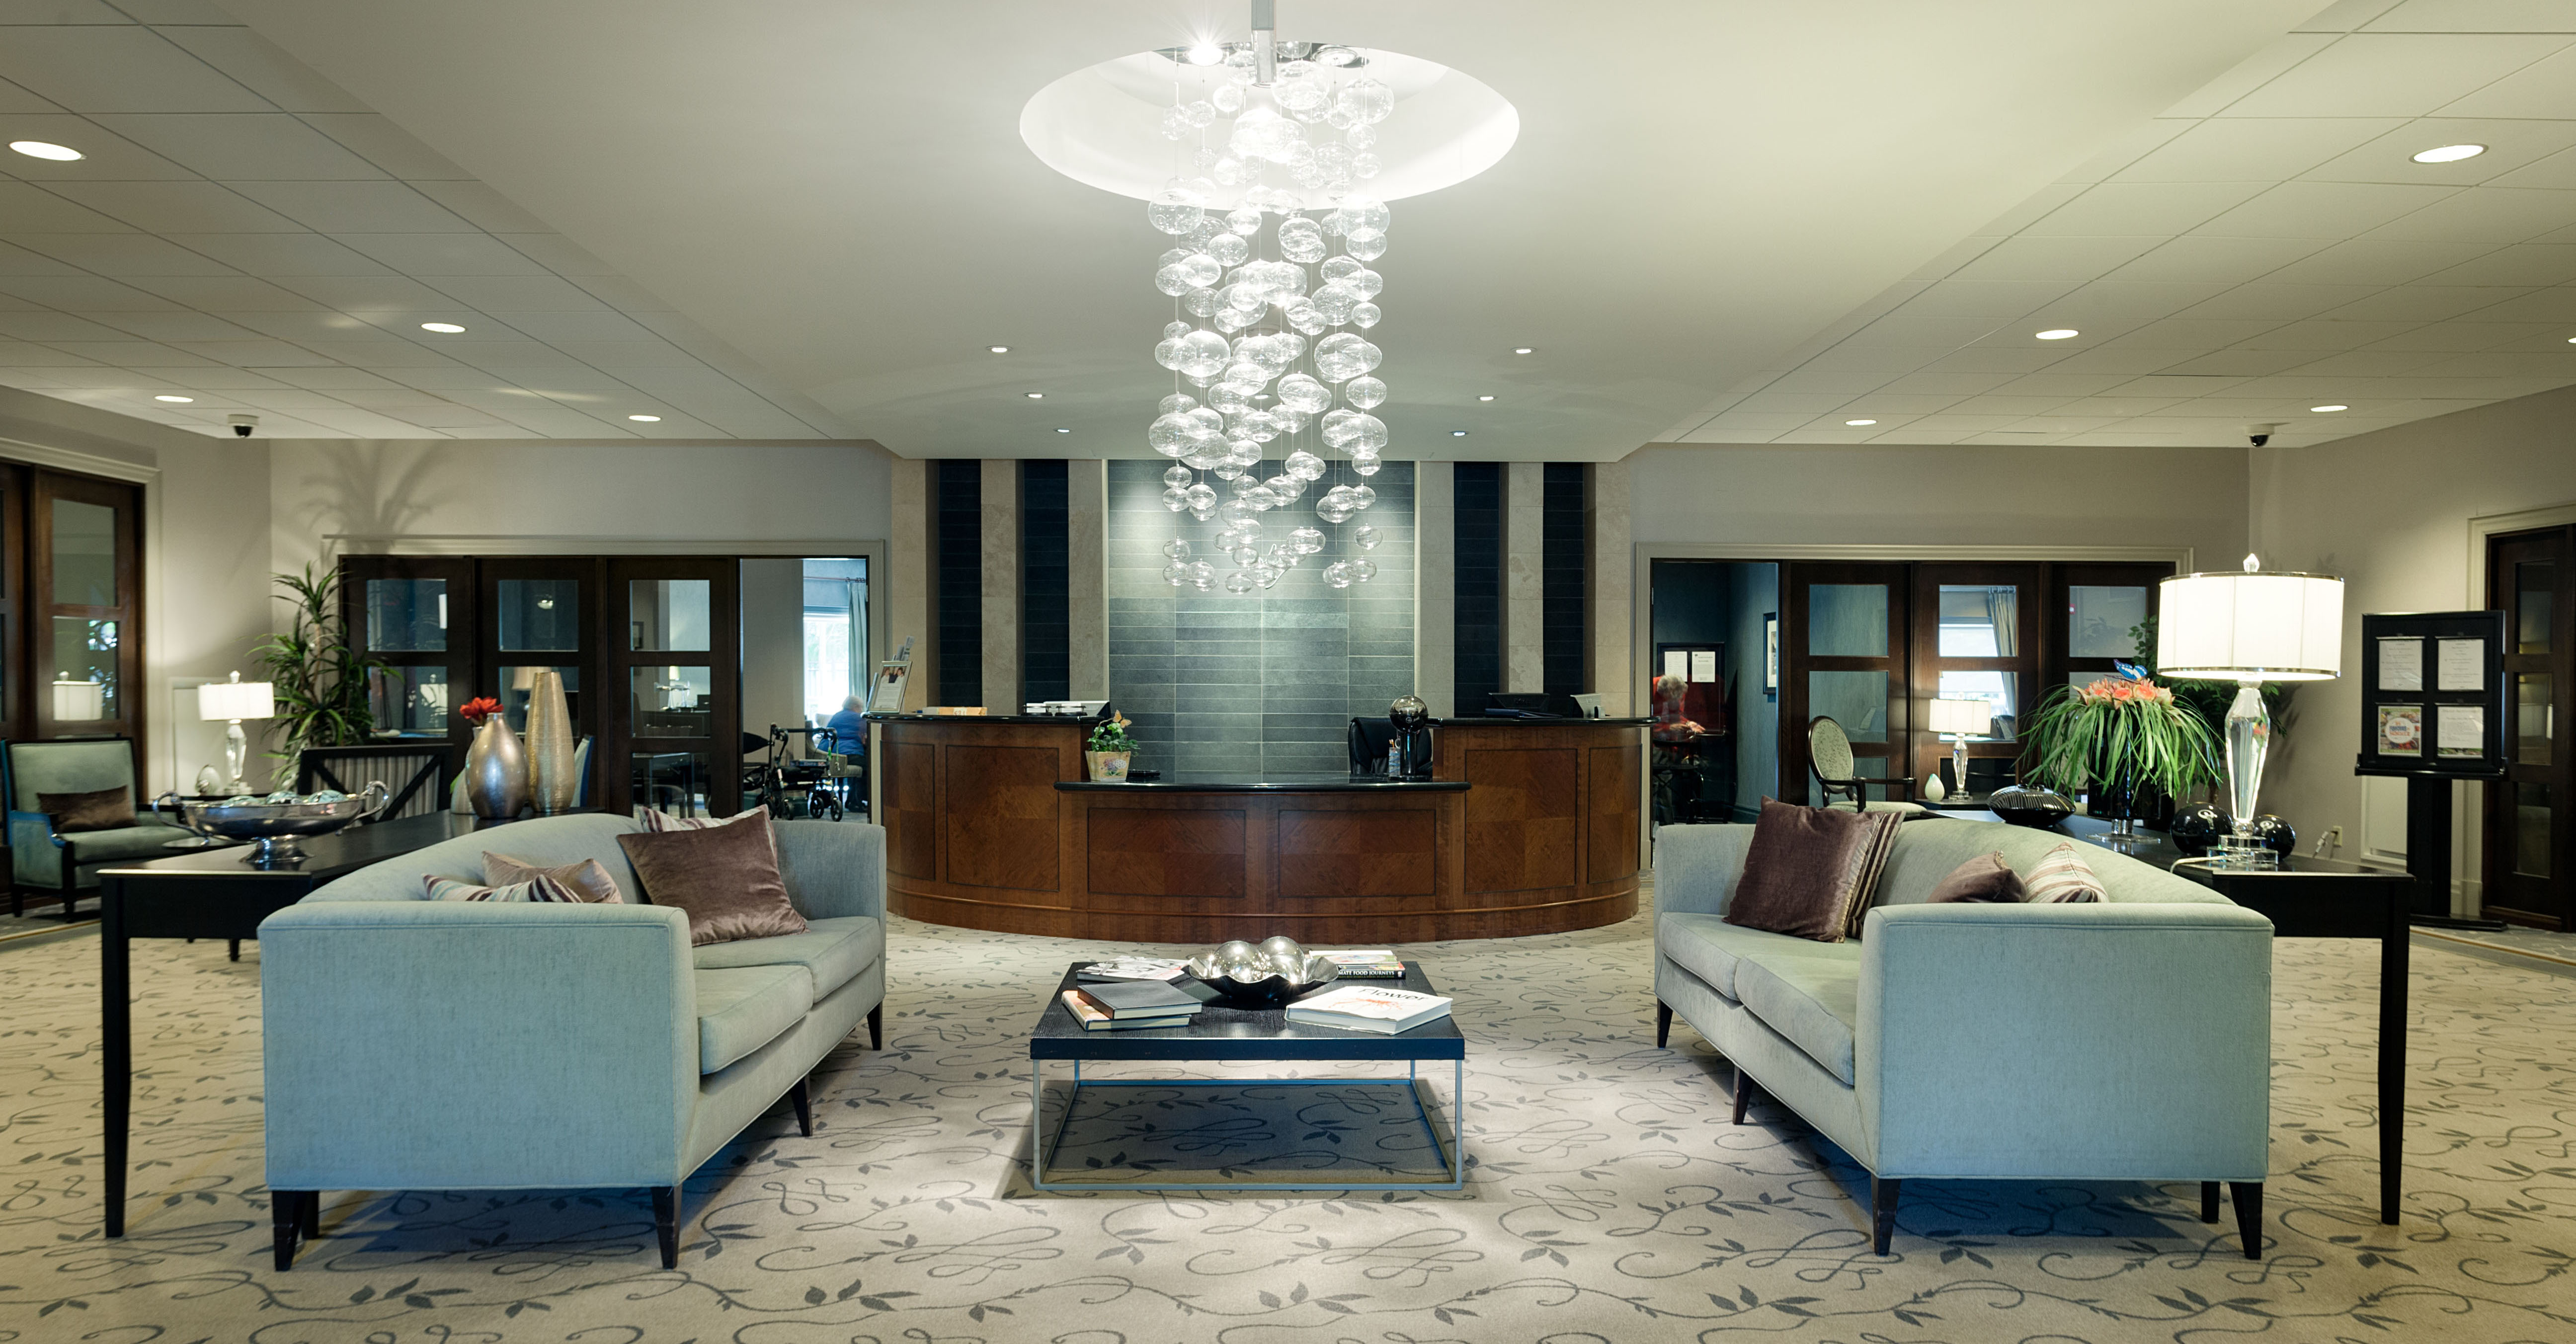 Lobby area at Amica Thornhill senior living residence.